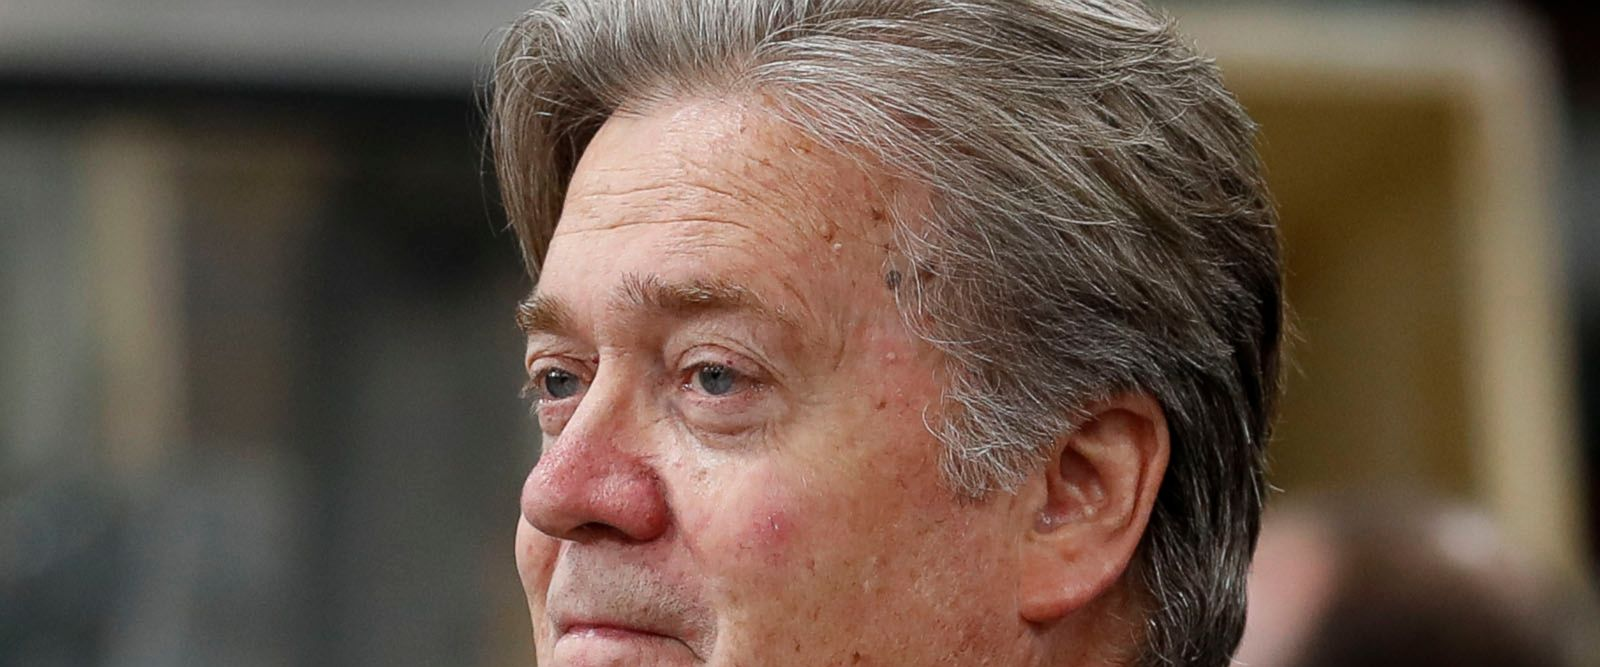 VIDEO: The Note: Steve Bannon's future in jeopardy?